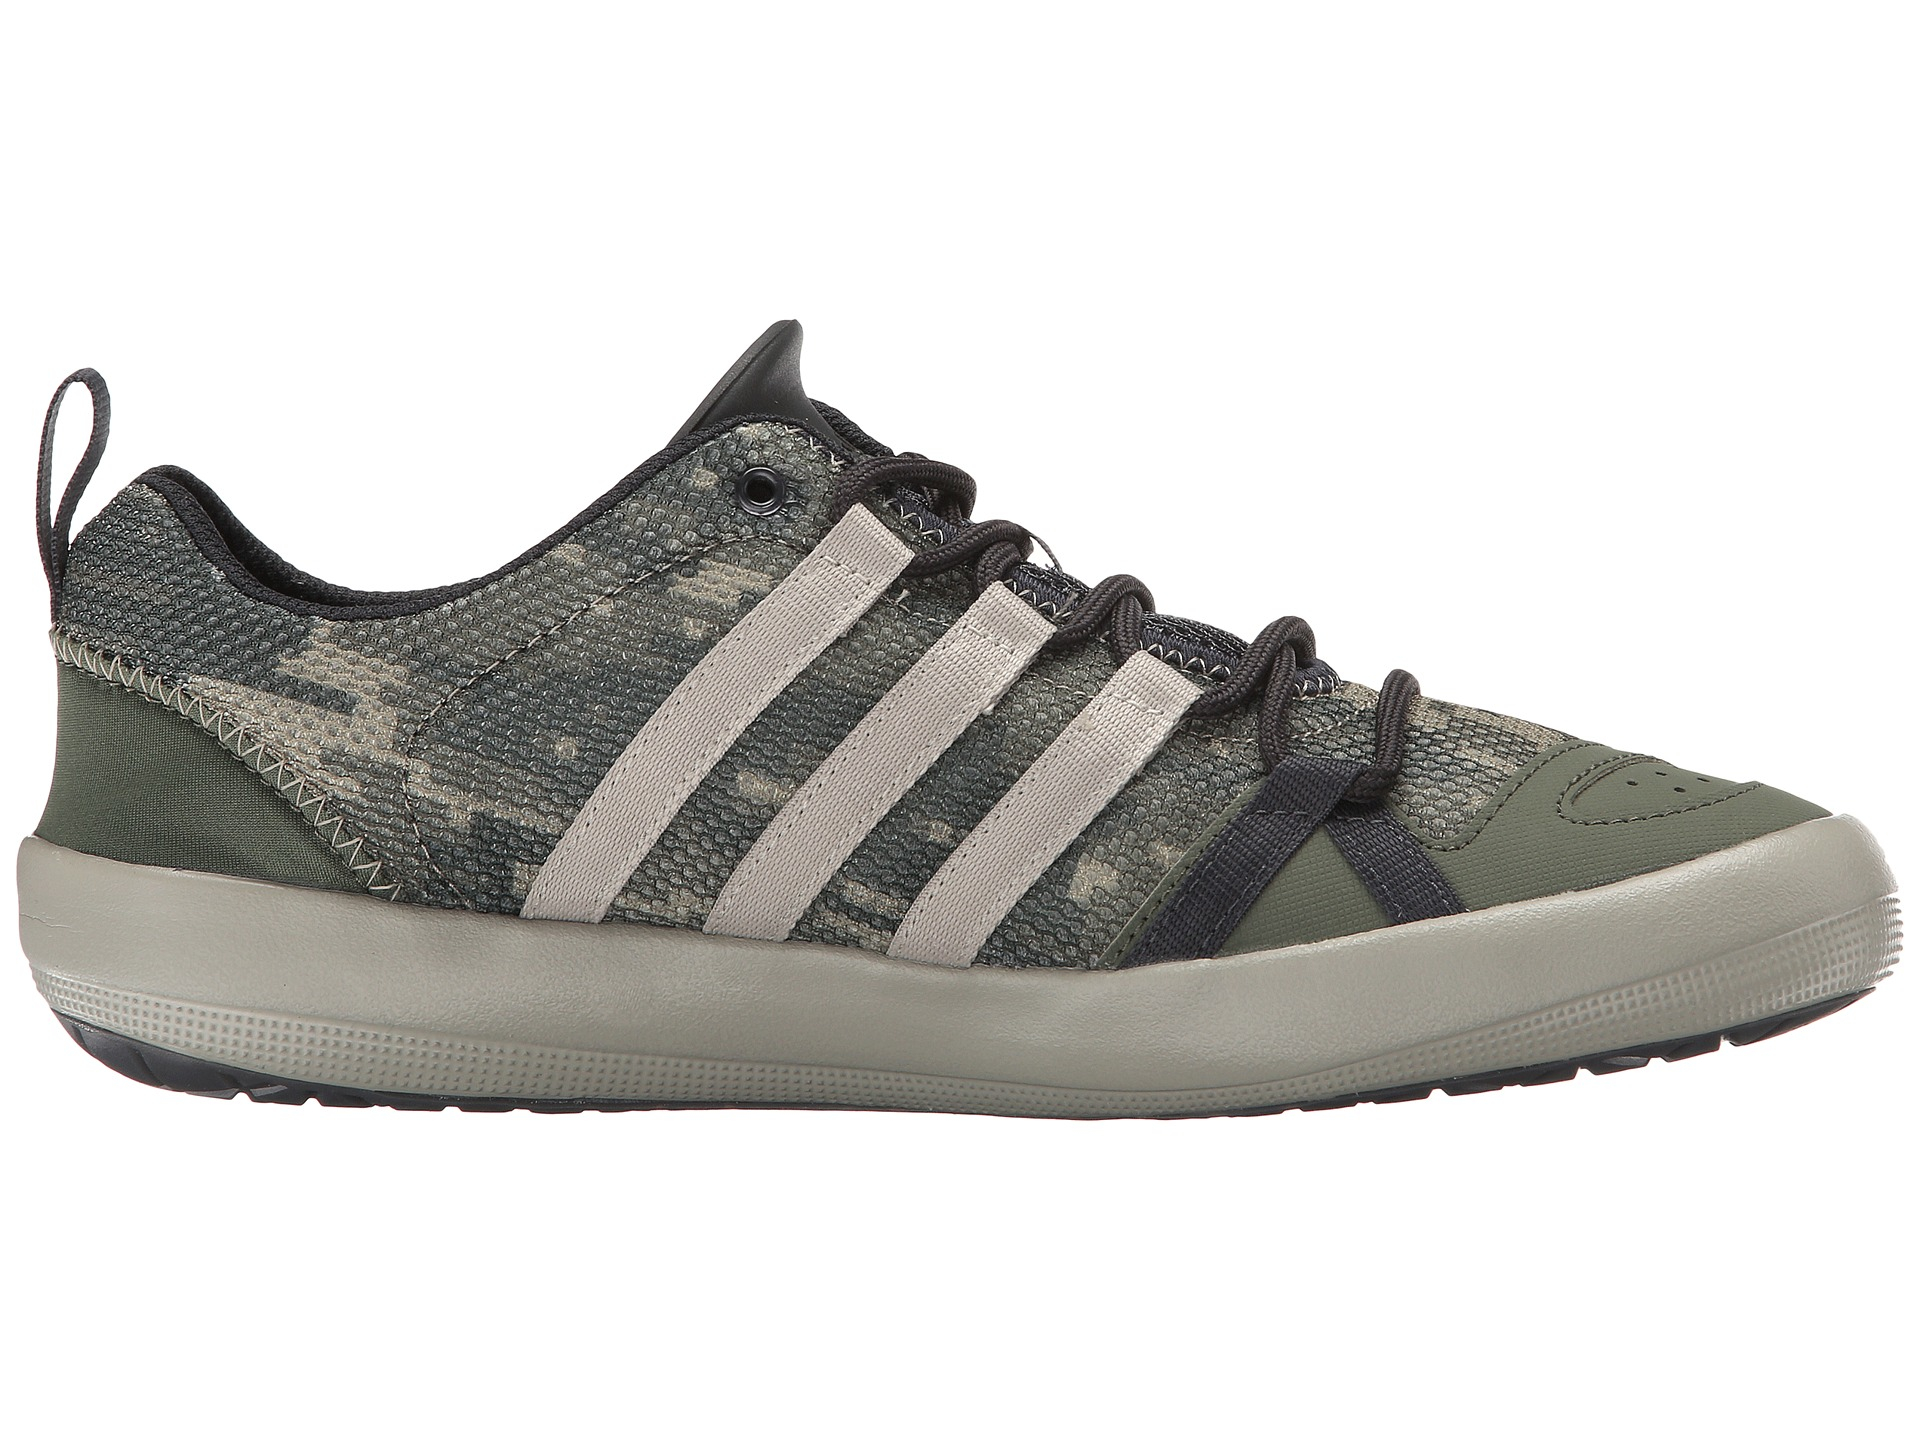 low priced 2075e ab8d0 Adidas Climacool Boat Lace Boutique